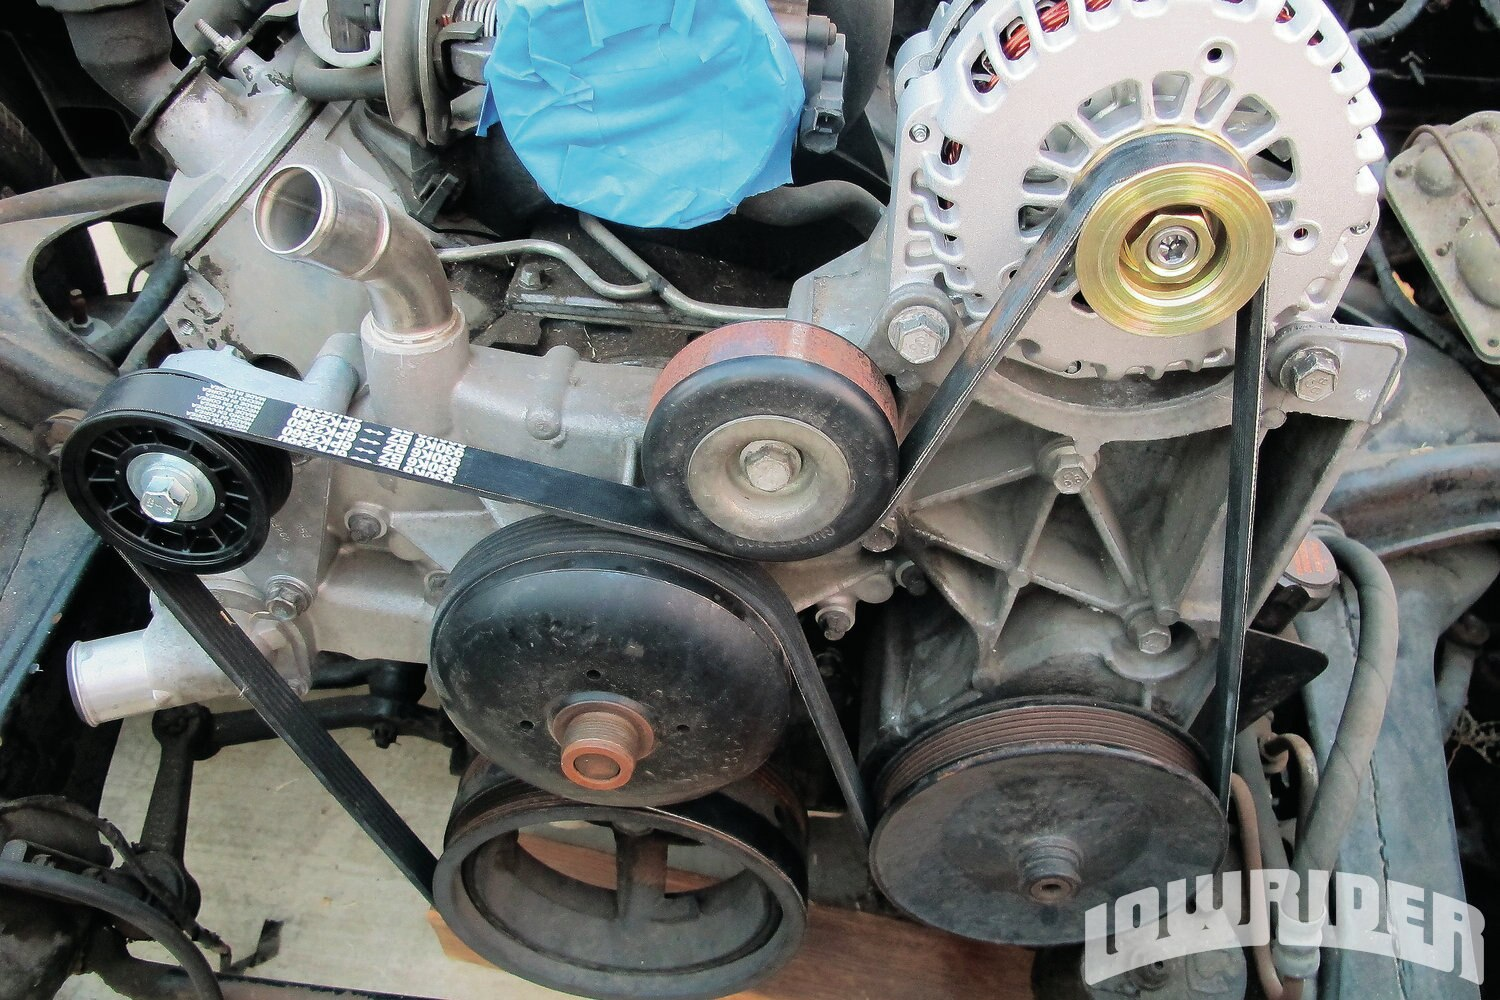 <strong>7</strong>. This alternator is now ready to charge at your ride's lifestyle.